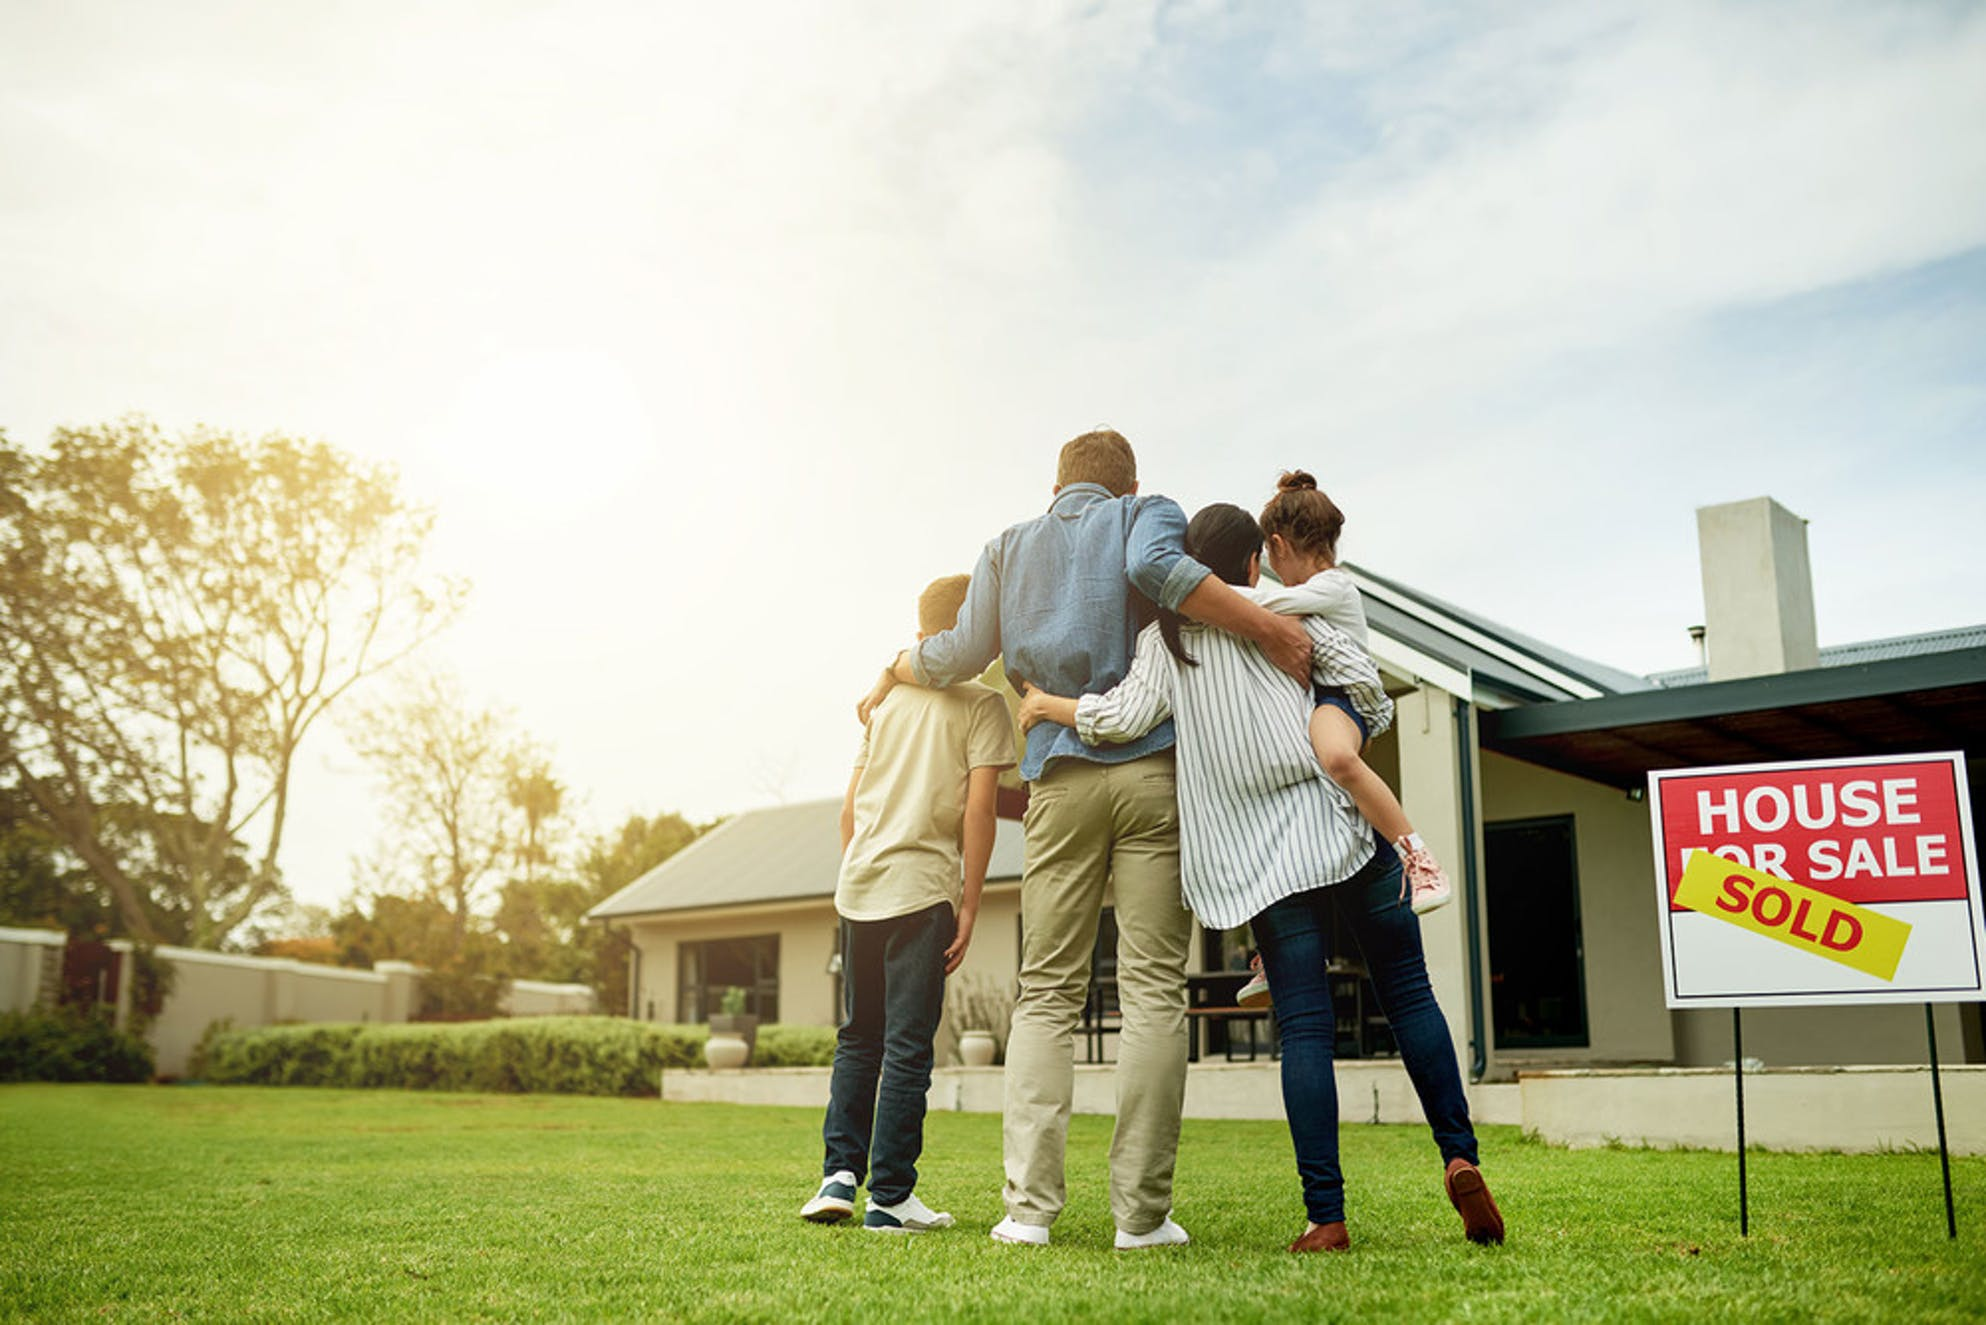 What to do with a tax refund: save for an exciting goal like buying a house